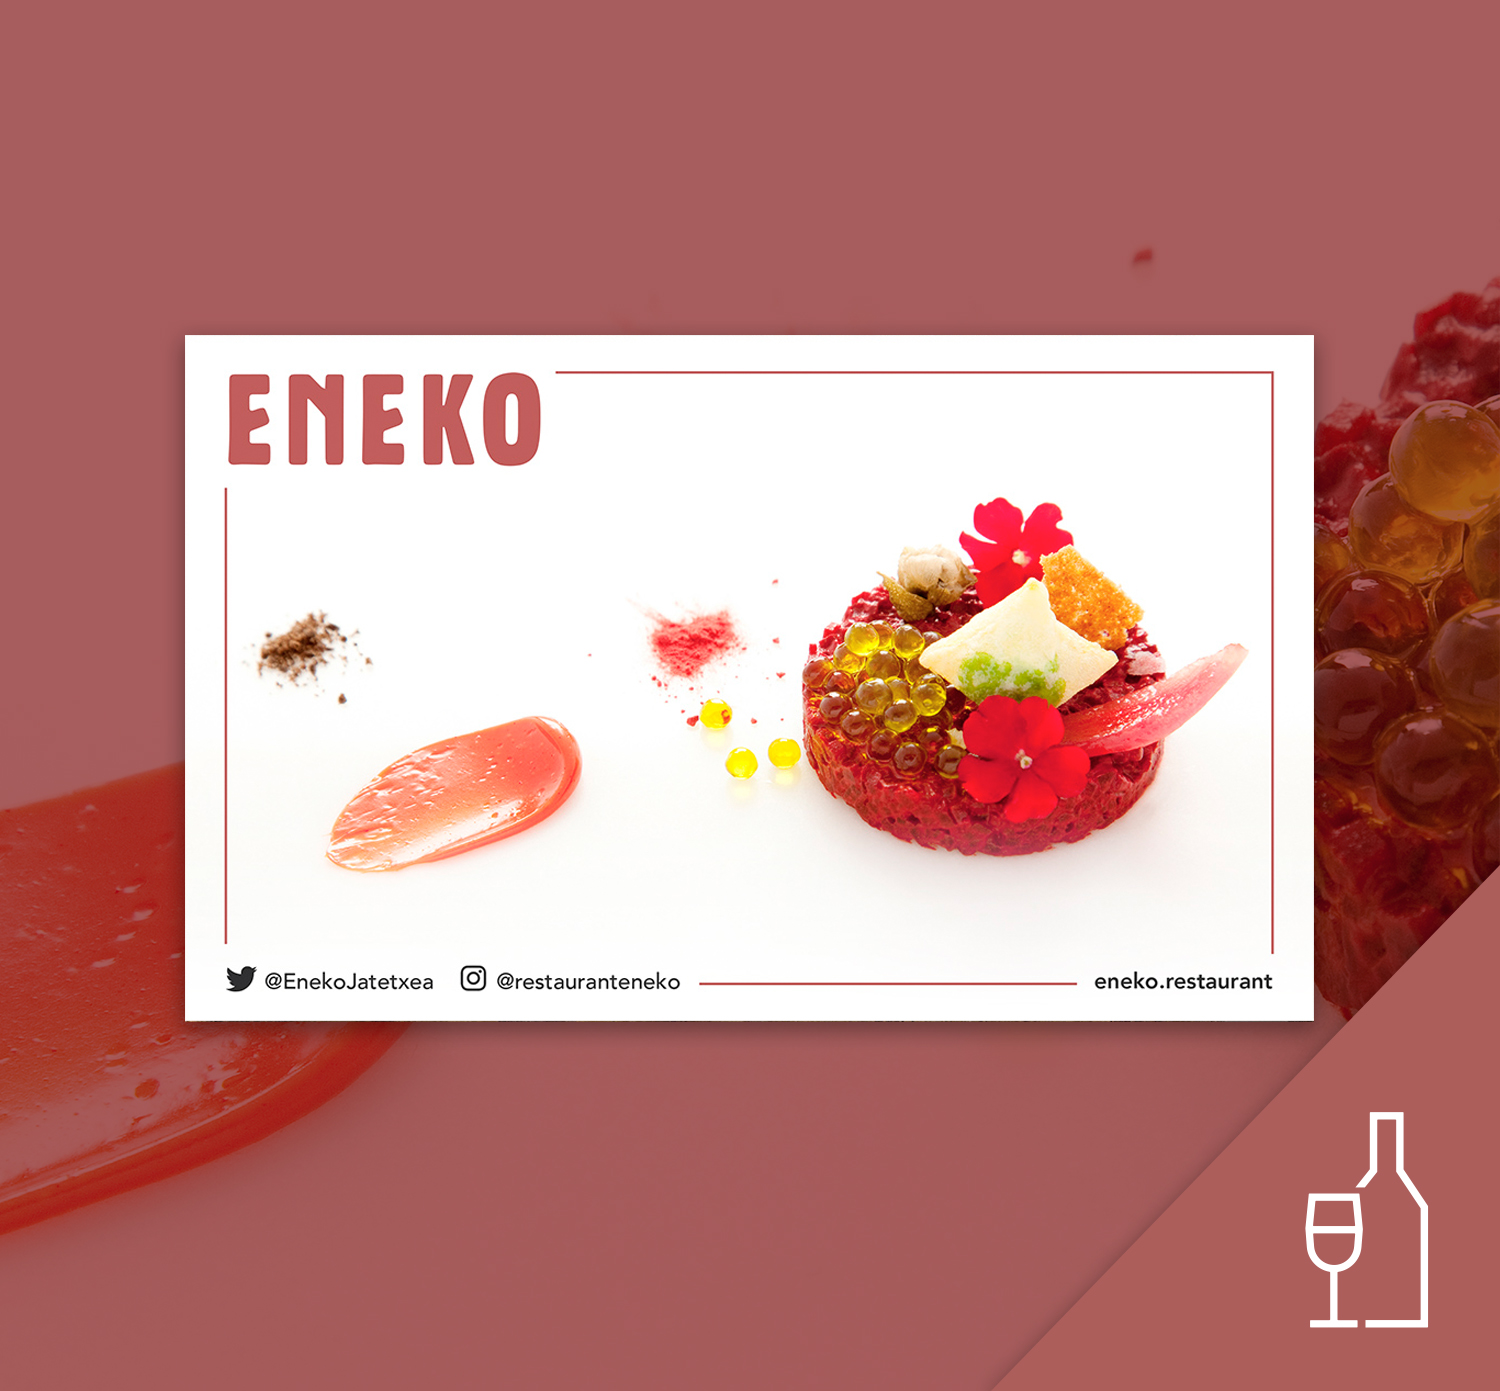 Sutan menu gift card at ENEKO restaurant + pairing